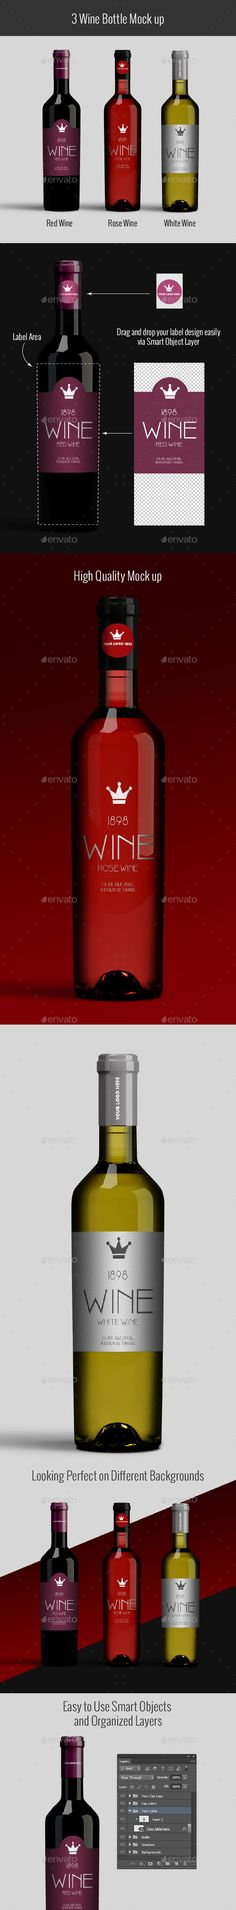 Wine Bottle Mockup by masterpixdesign Features 3 High Resolution PSD files Red Wine, Rose Wine and White wine bottlesFully organizedlayers and folders5000×3000300dpi Ea